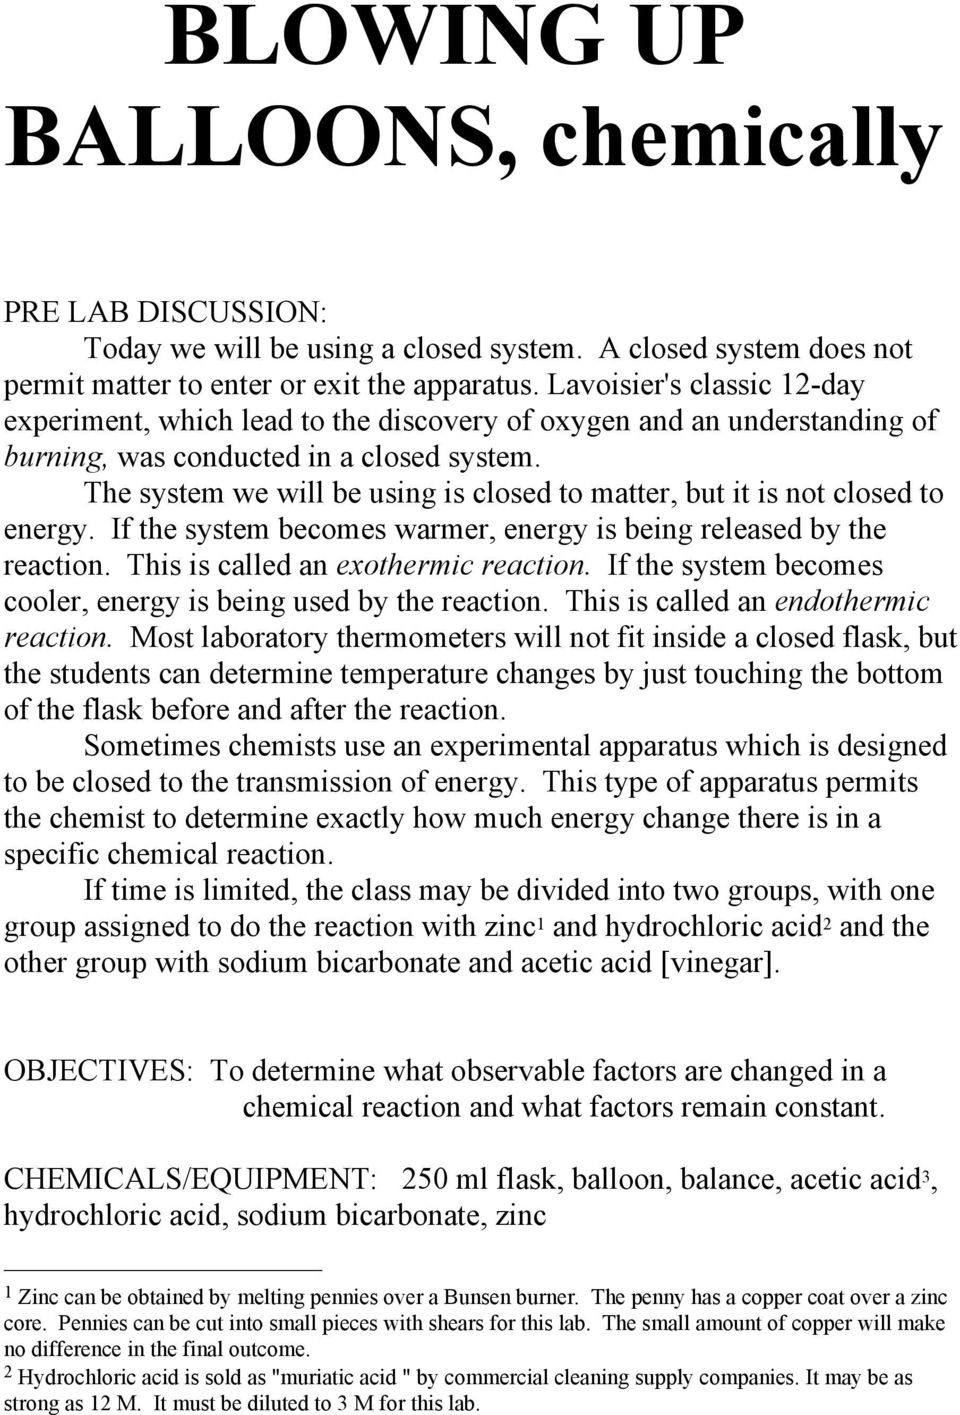 The system we will be using is closed to matter, but it is not closed to energy. If the system becomes warmer, energy is being released by the reaction. This is called an exothermic reaction.